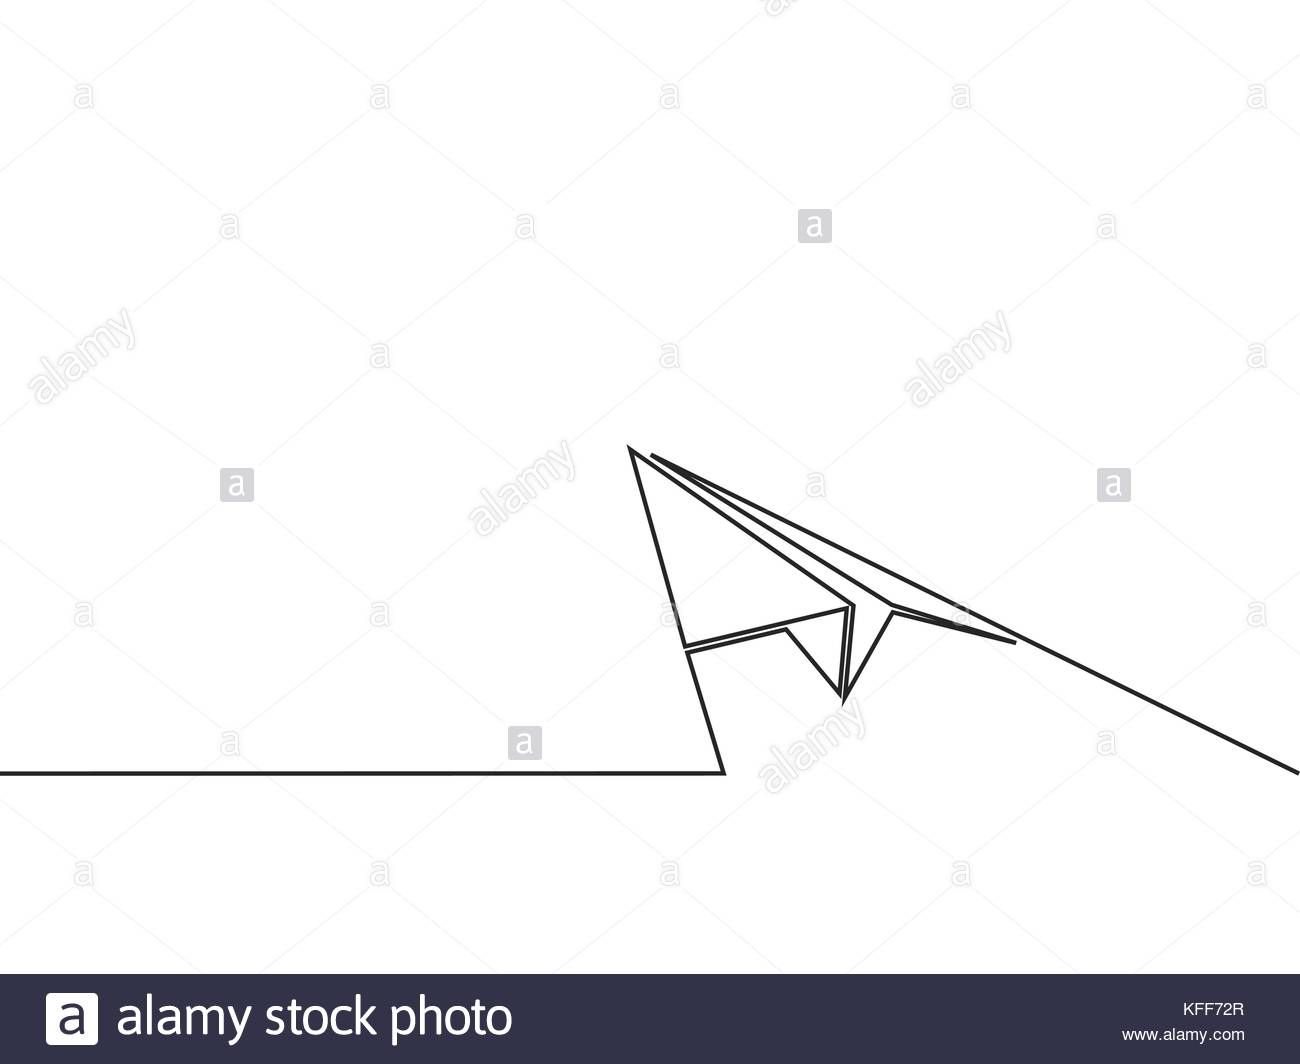 Simple Continuous Line Art : Paper airplane drawing at getdrawings.com free for personal use